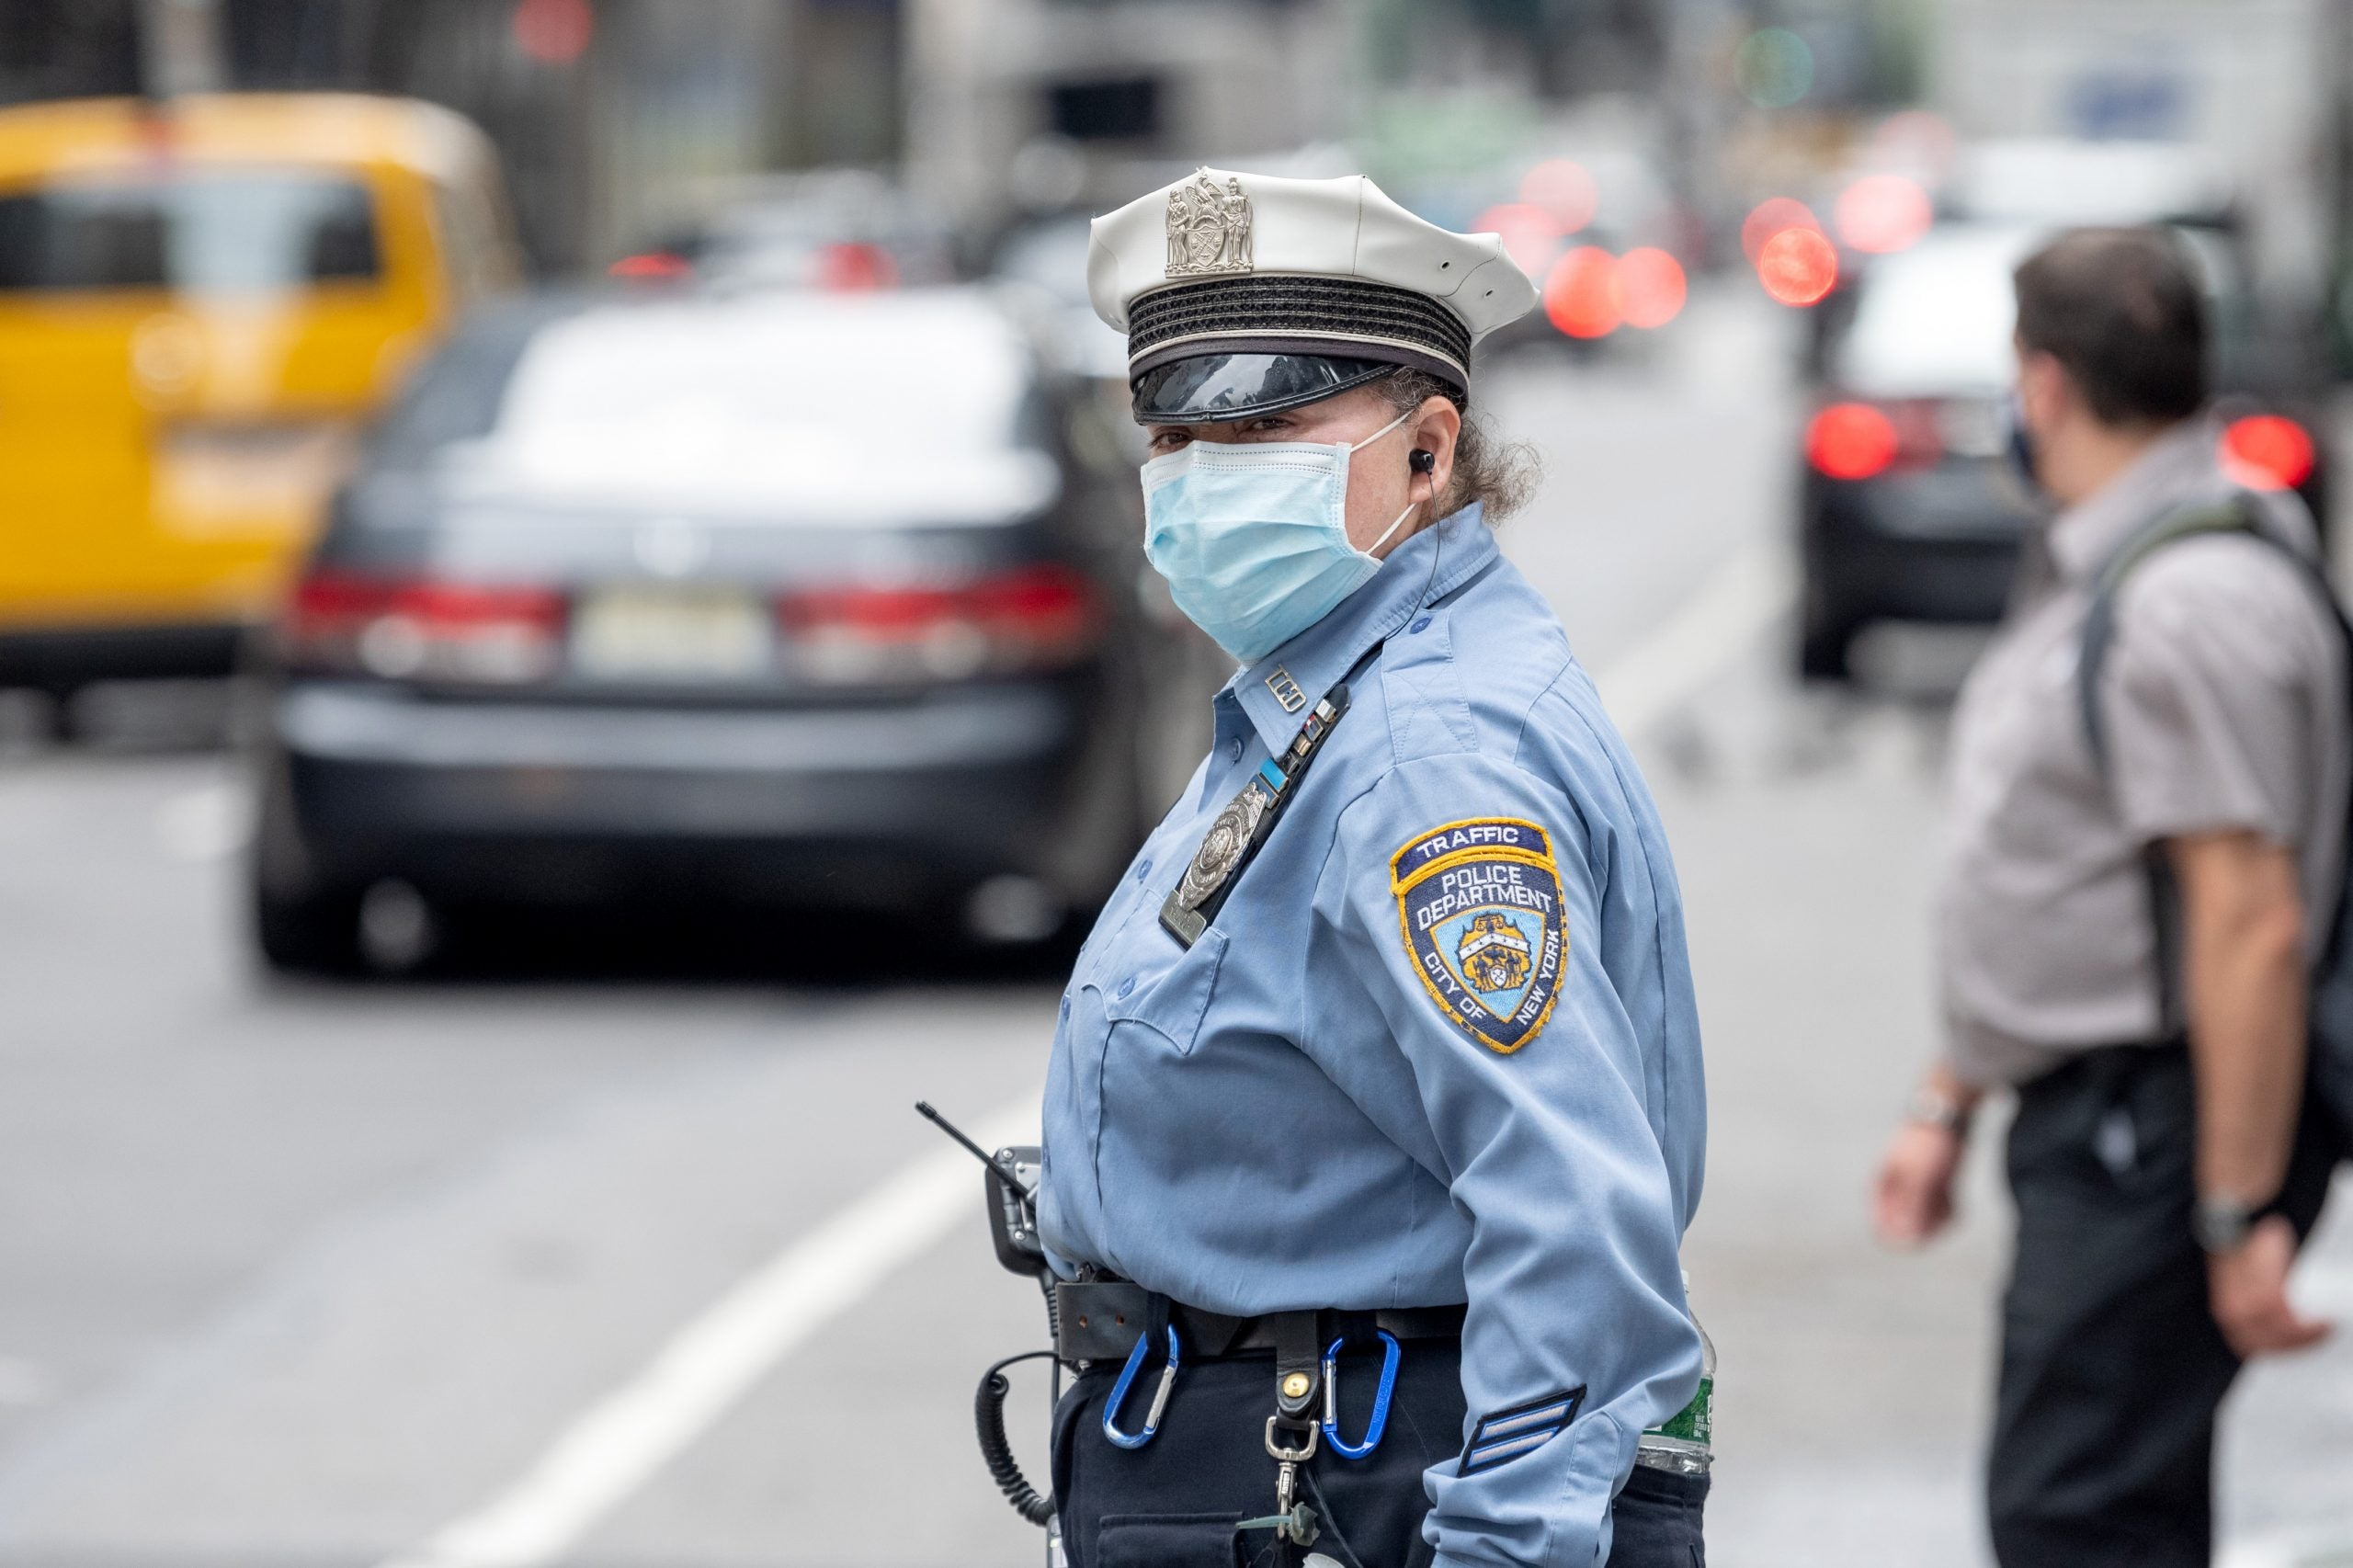 NYPD traffic officer wears mask